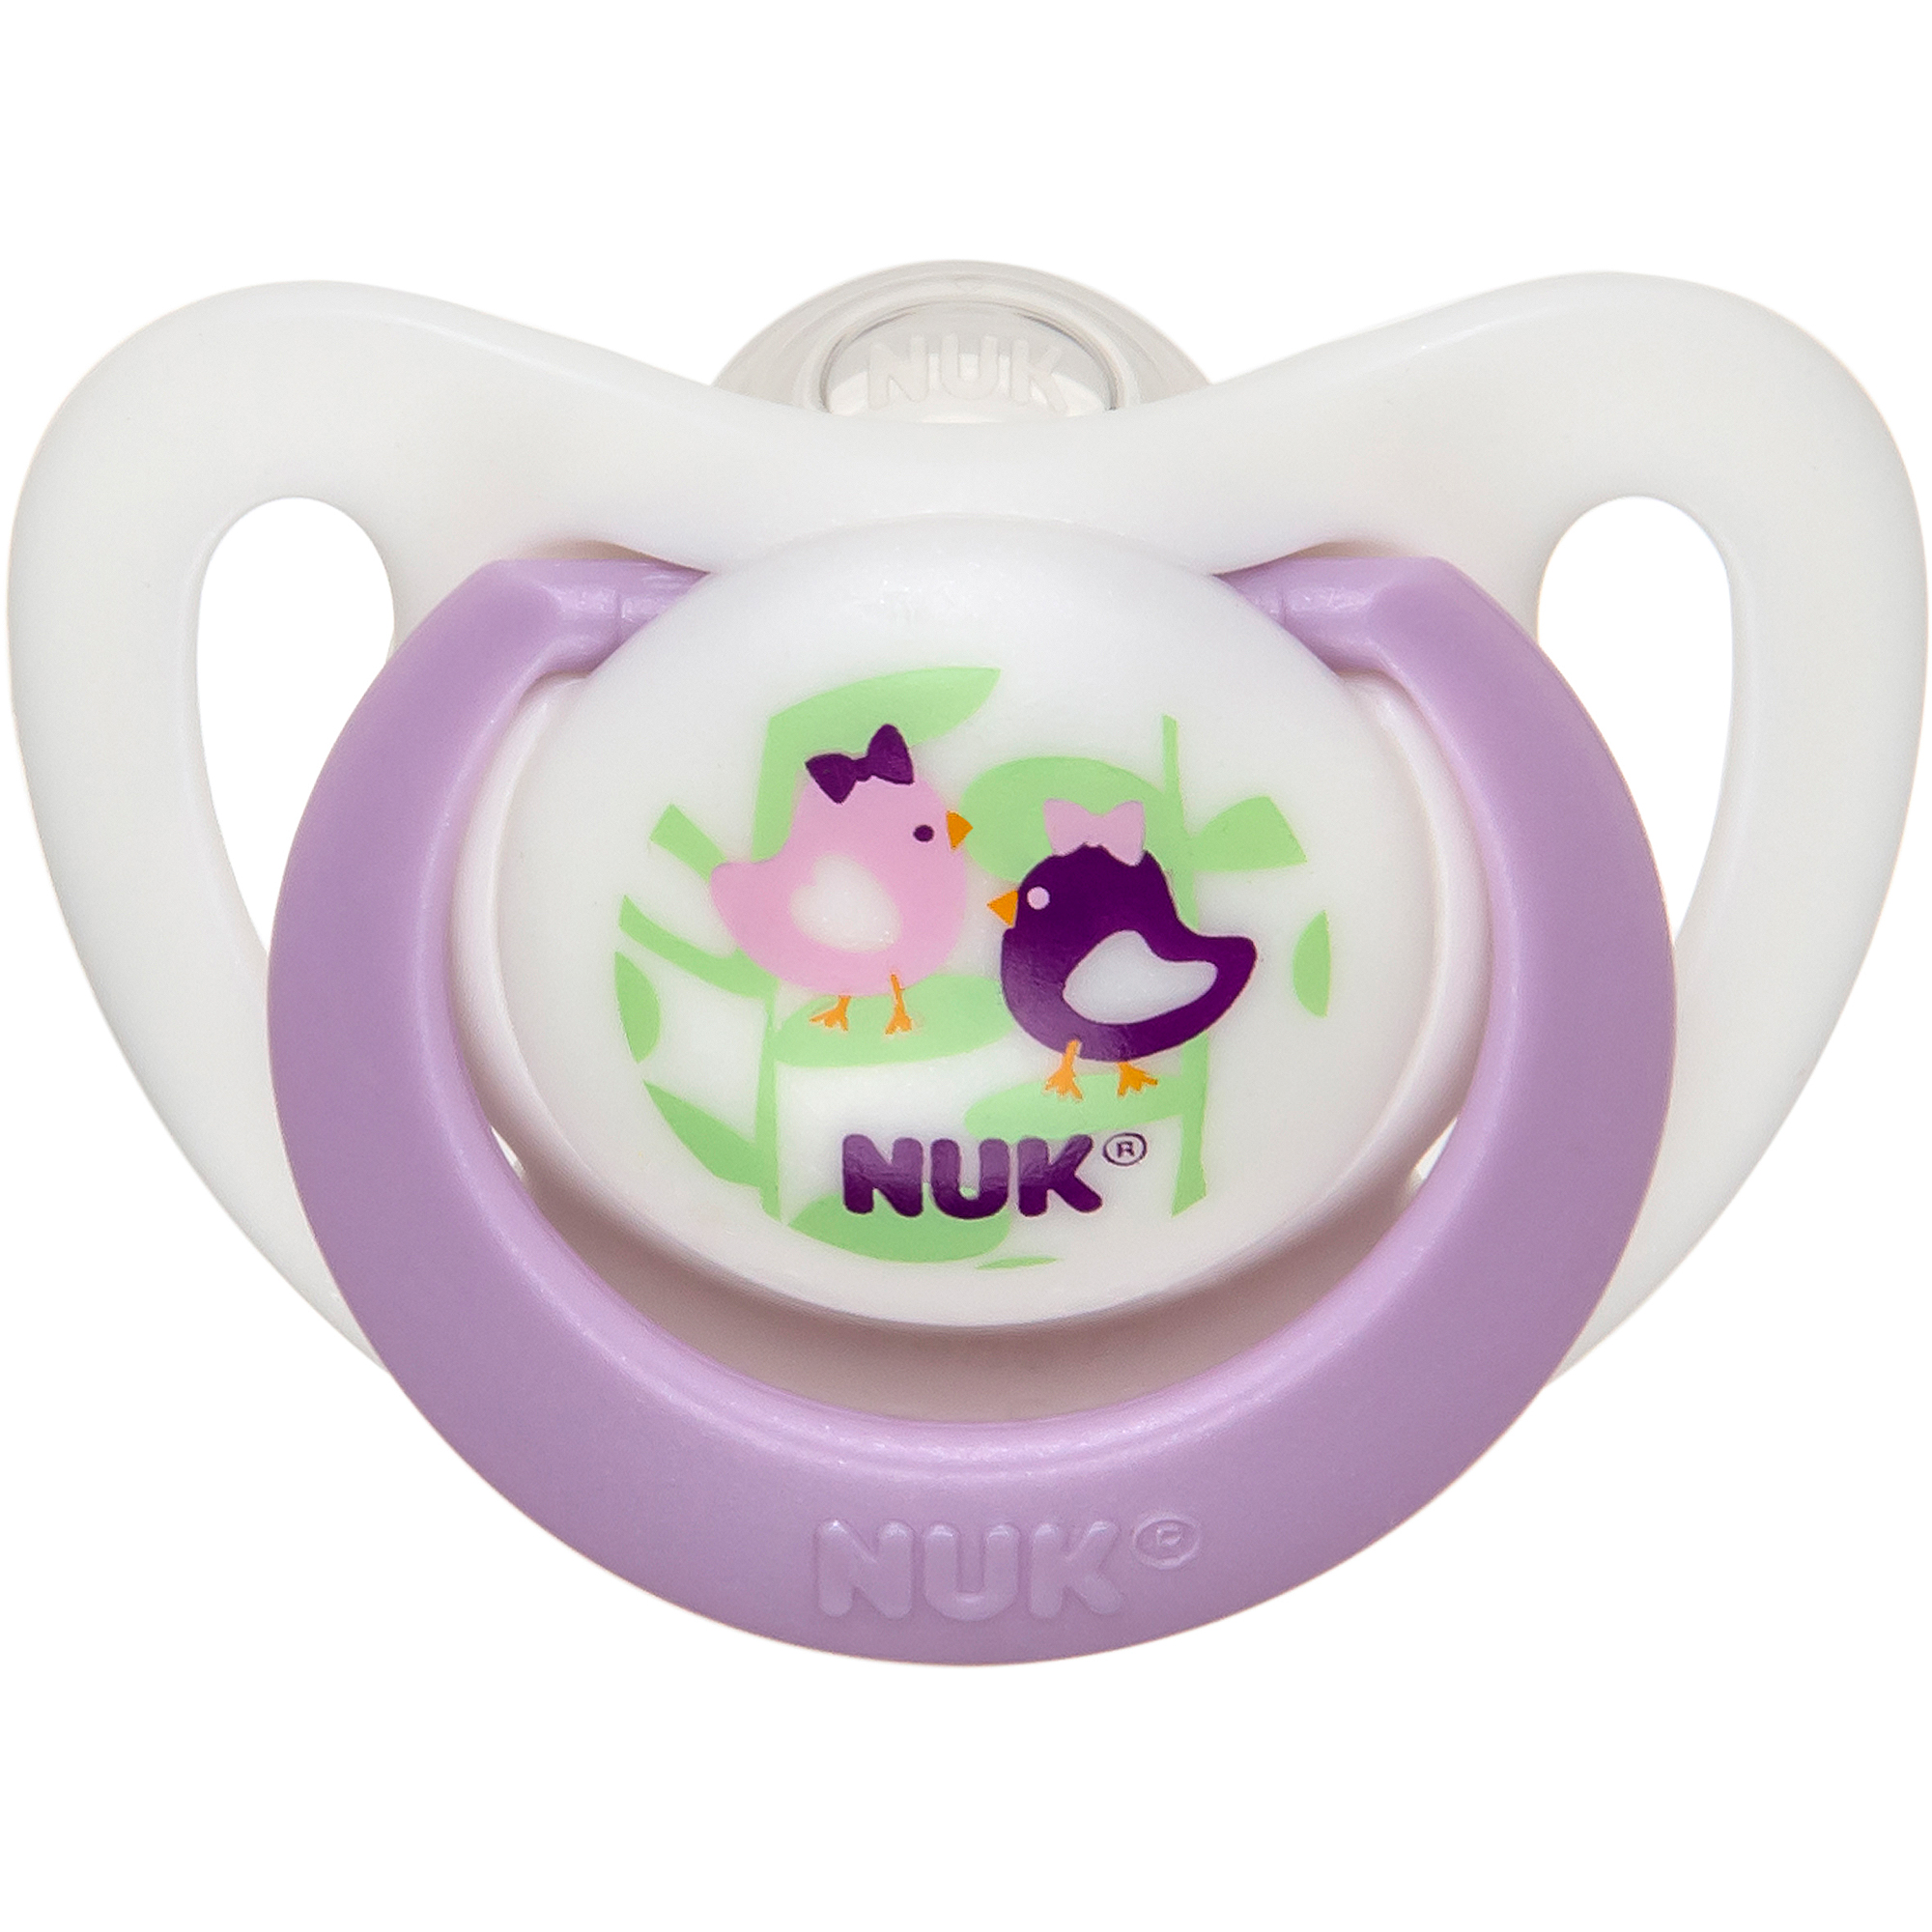 NUK Advanced Orthodontic Pacifiers, 0-2 Months - 2 Counts (Colors May Vary)